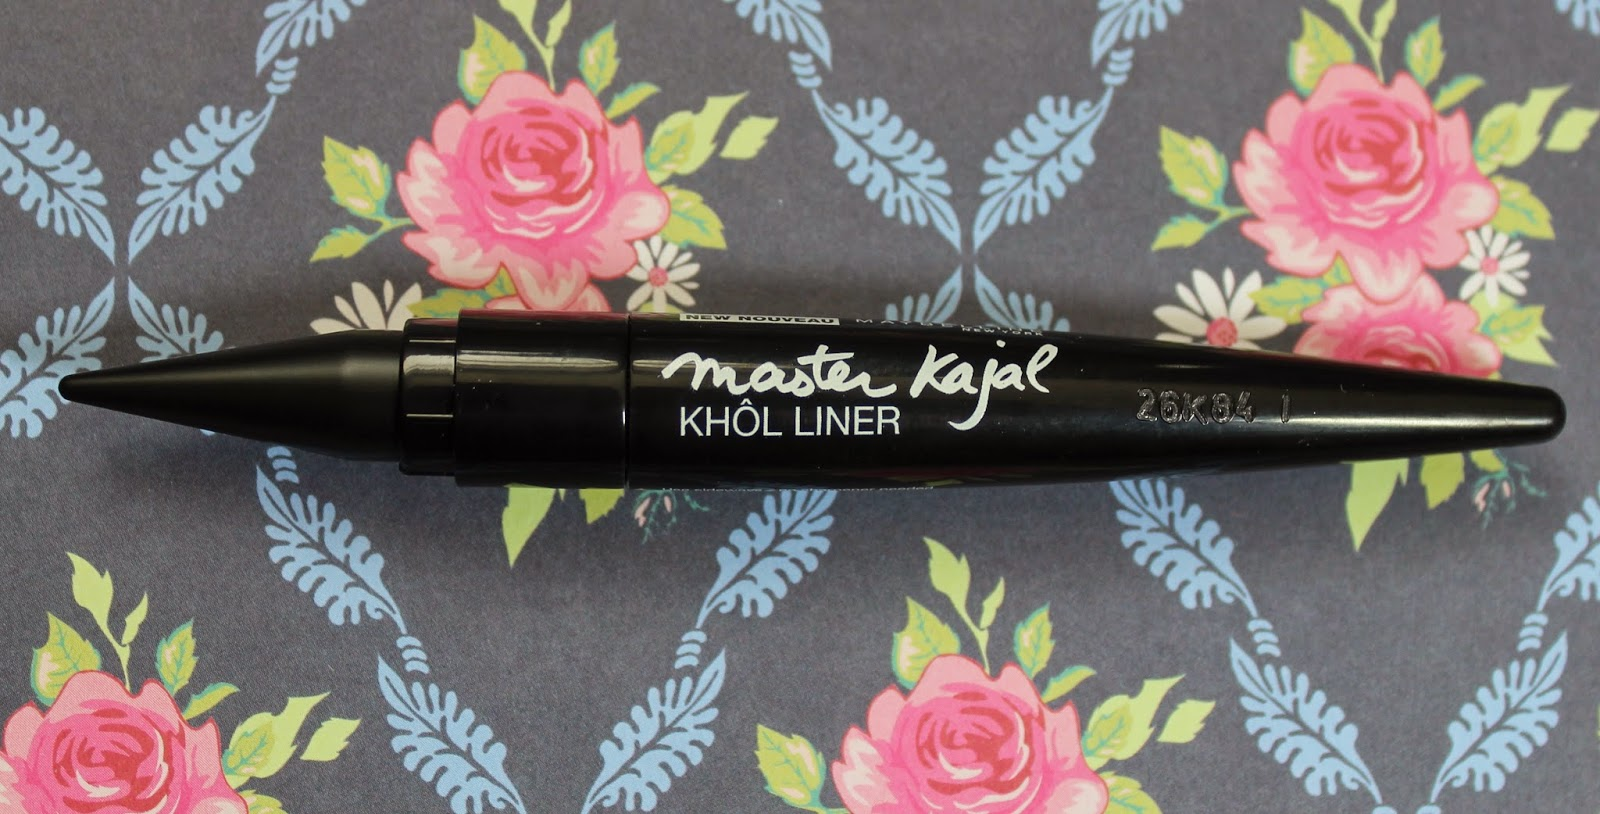 maybelline master kajal khol liner pitch black